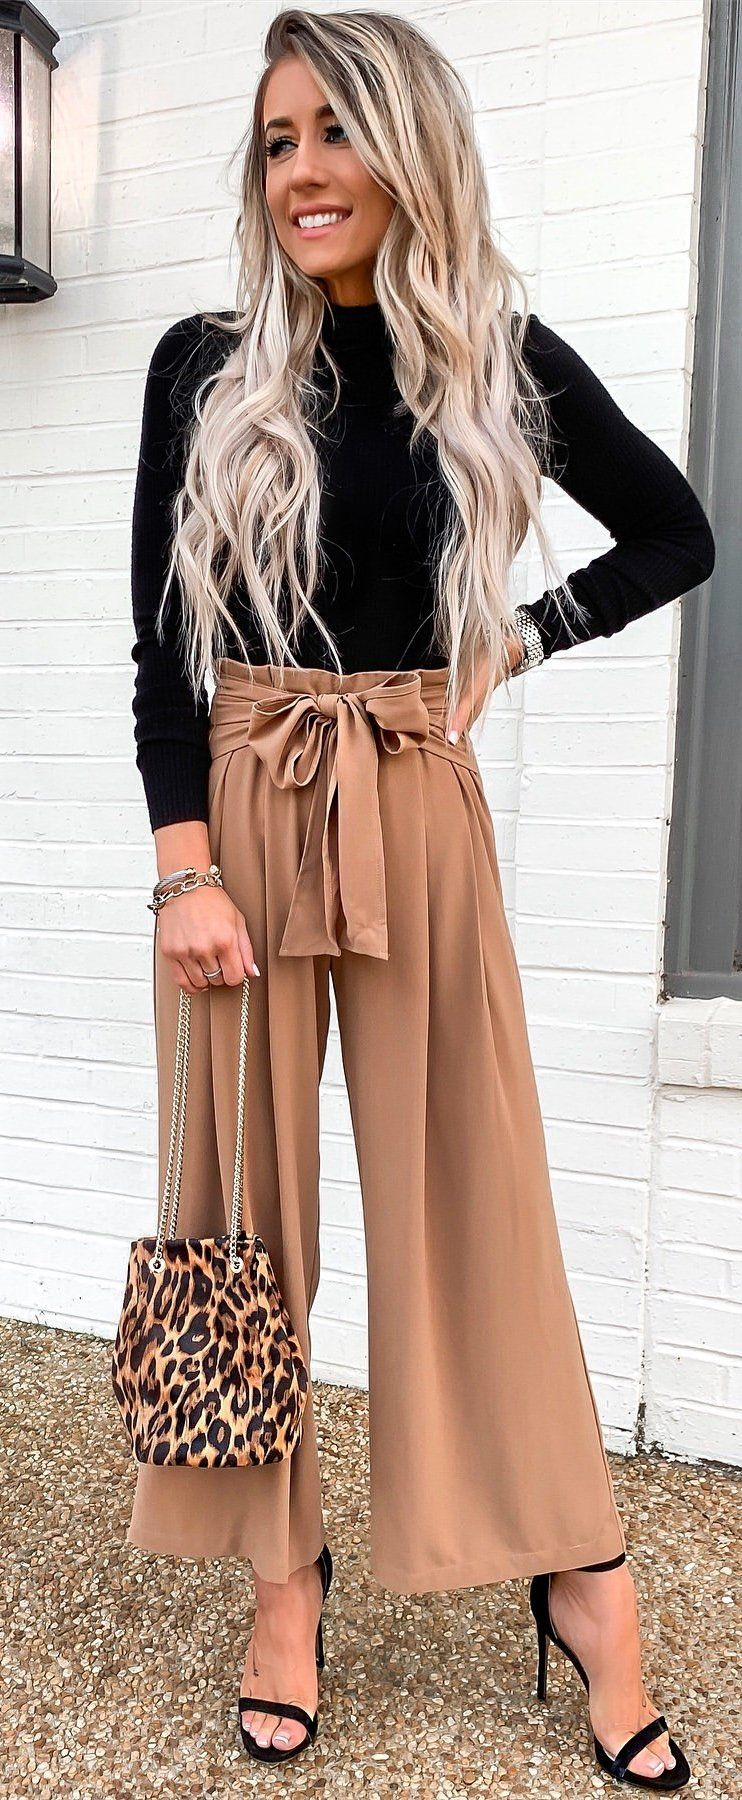 brown sleeveless dress #winter #outfits